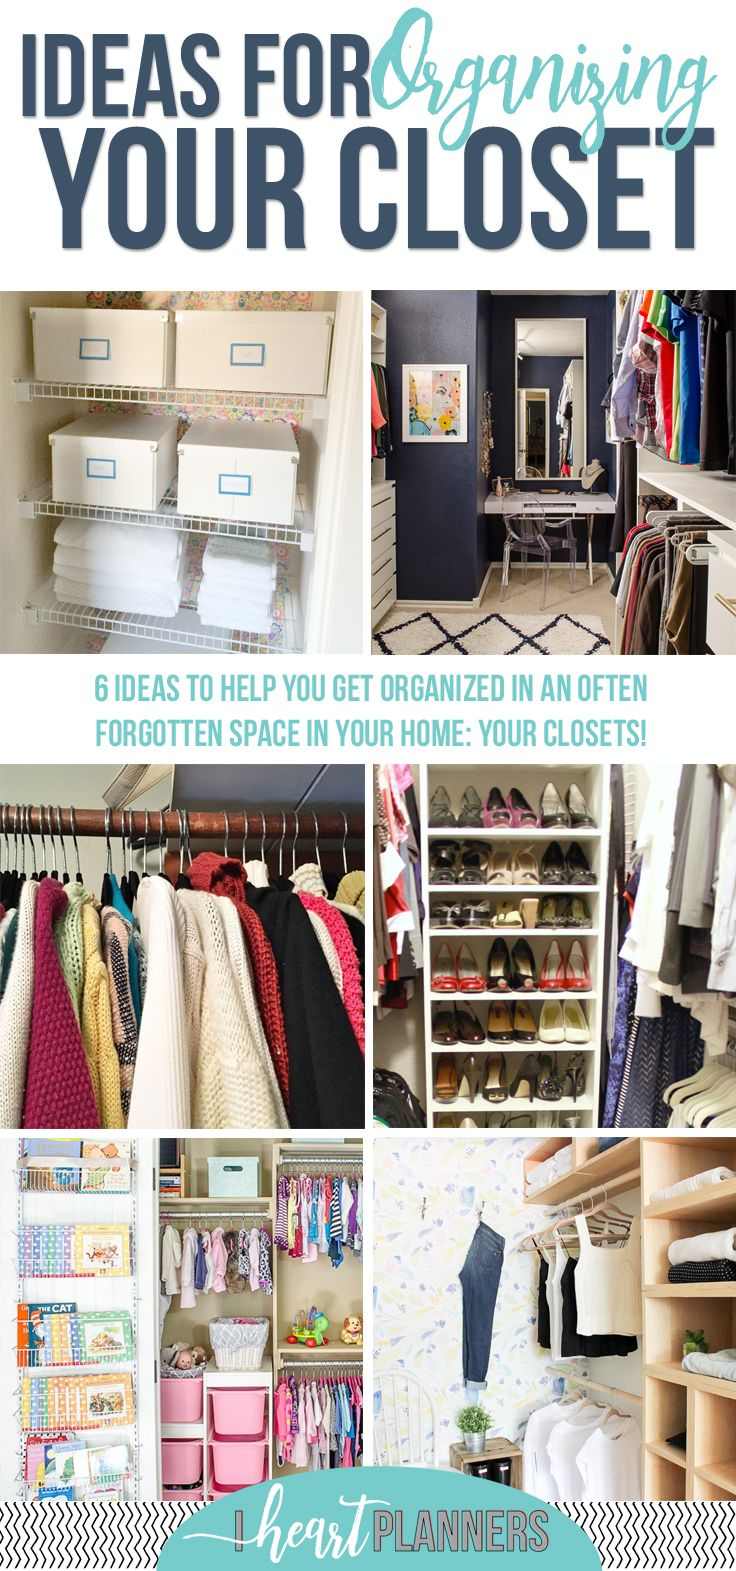 I recently completely reorganized our master closet, so I definitely have closets on my mind. Closet Organizing Inspiration| How to Organize Your Closet